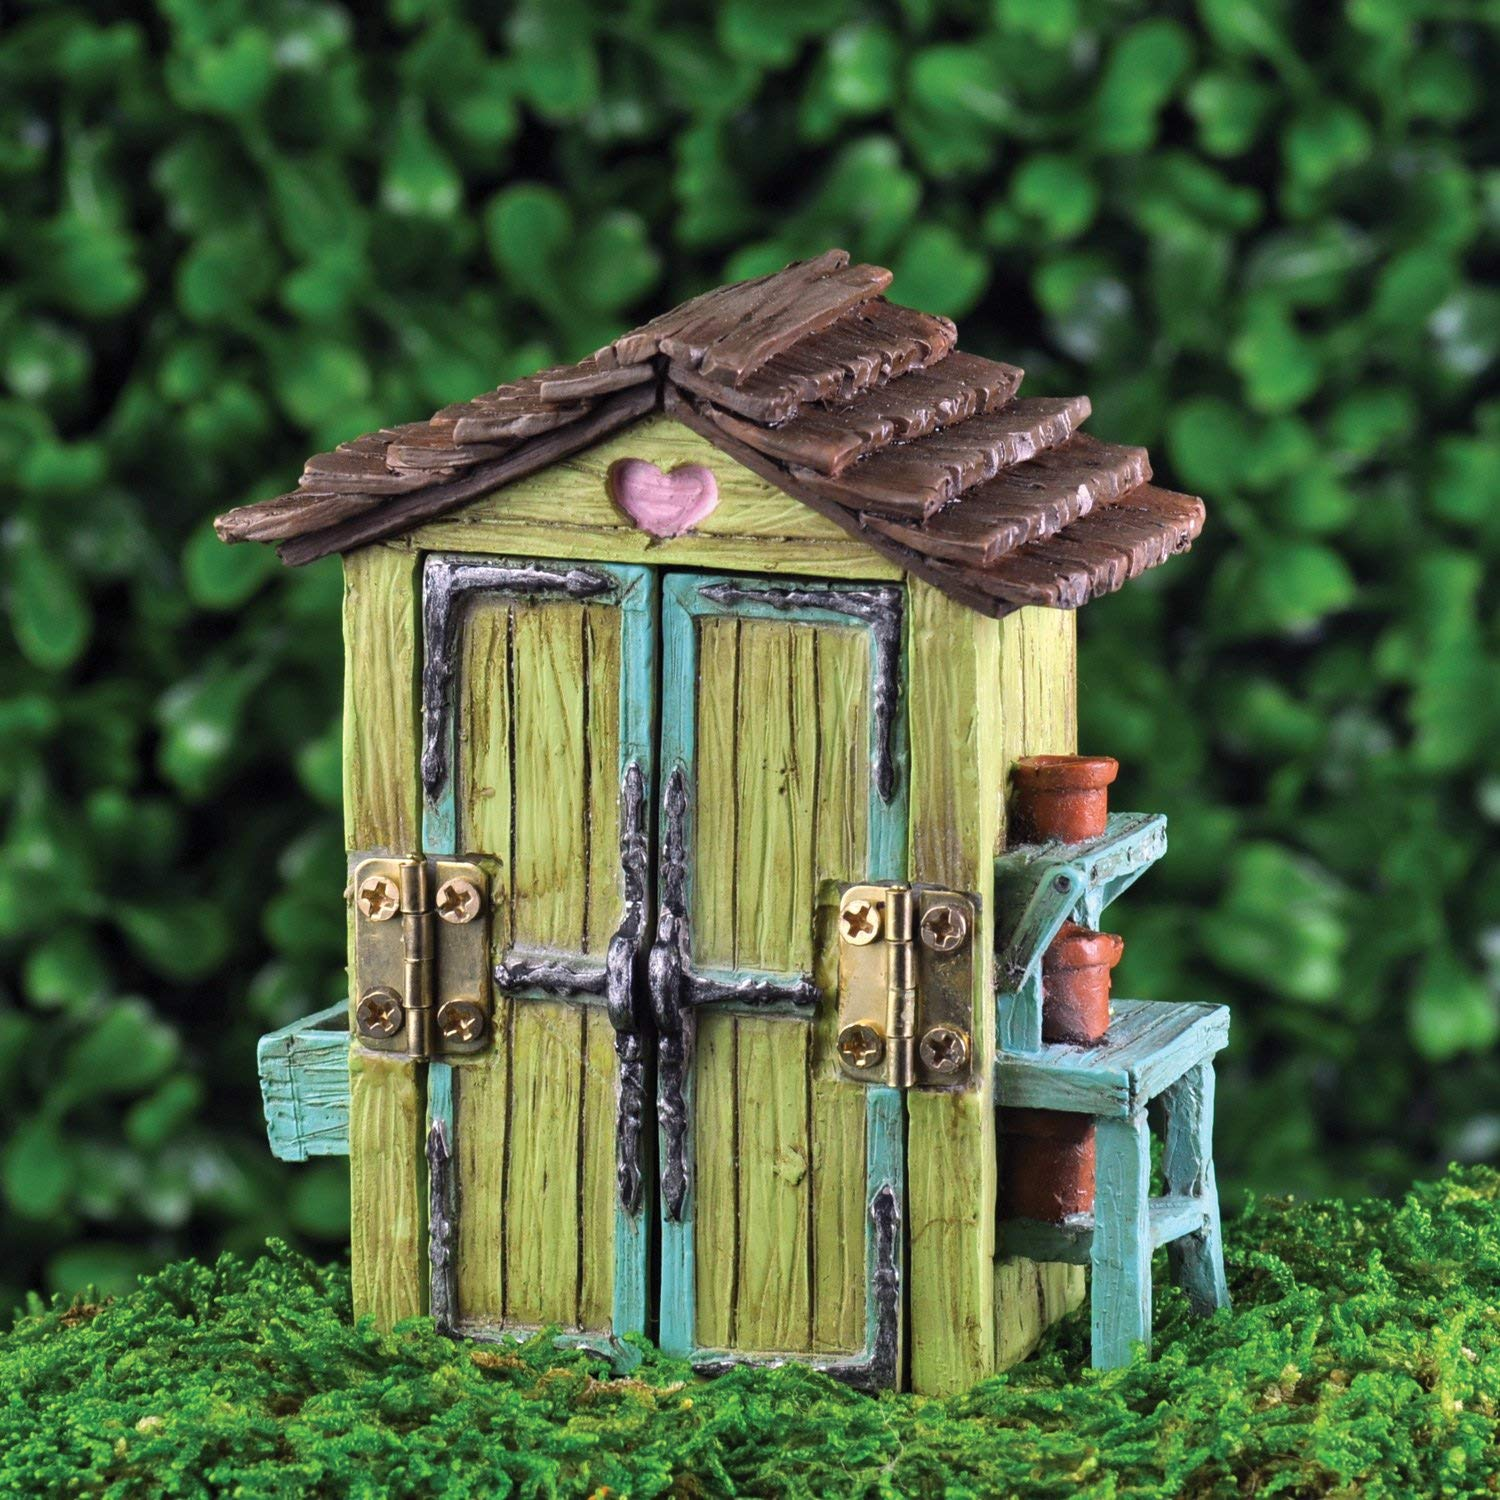 Miniature green garden shed with a blue potting bench, brown roof, and hinges that open the doors